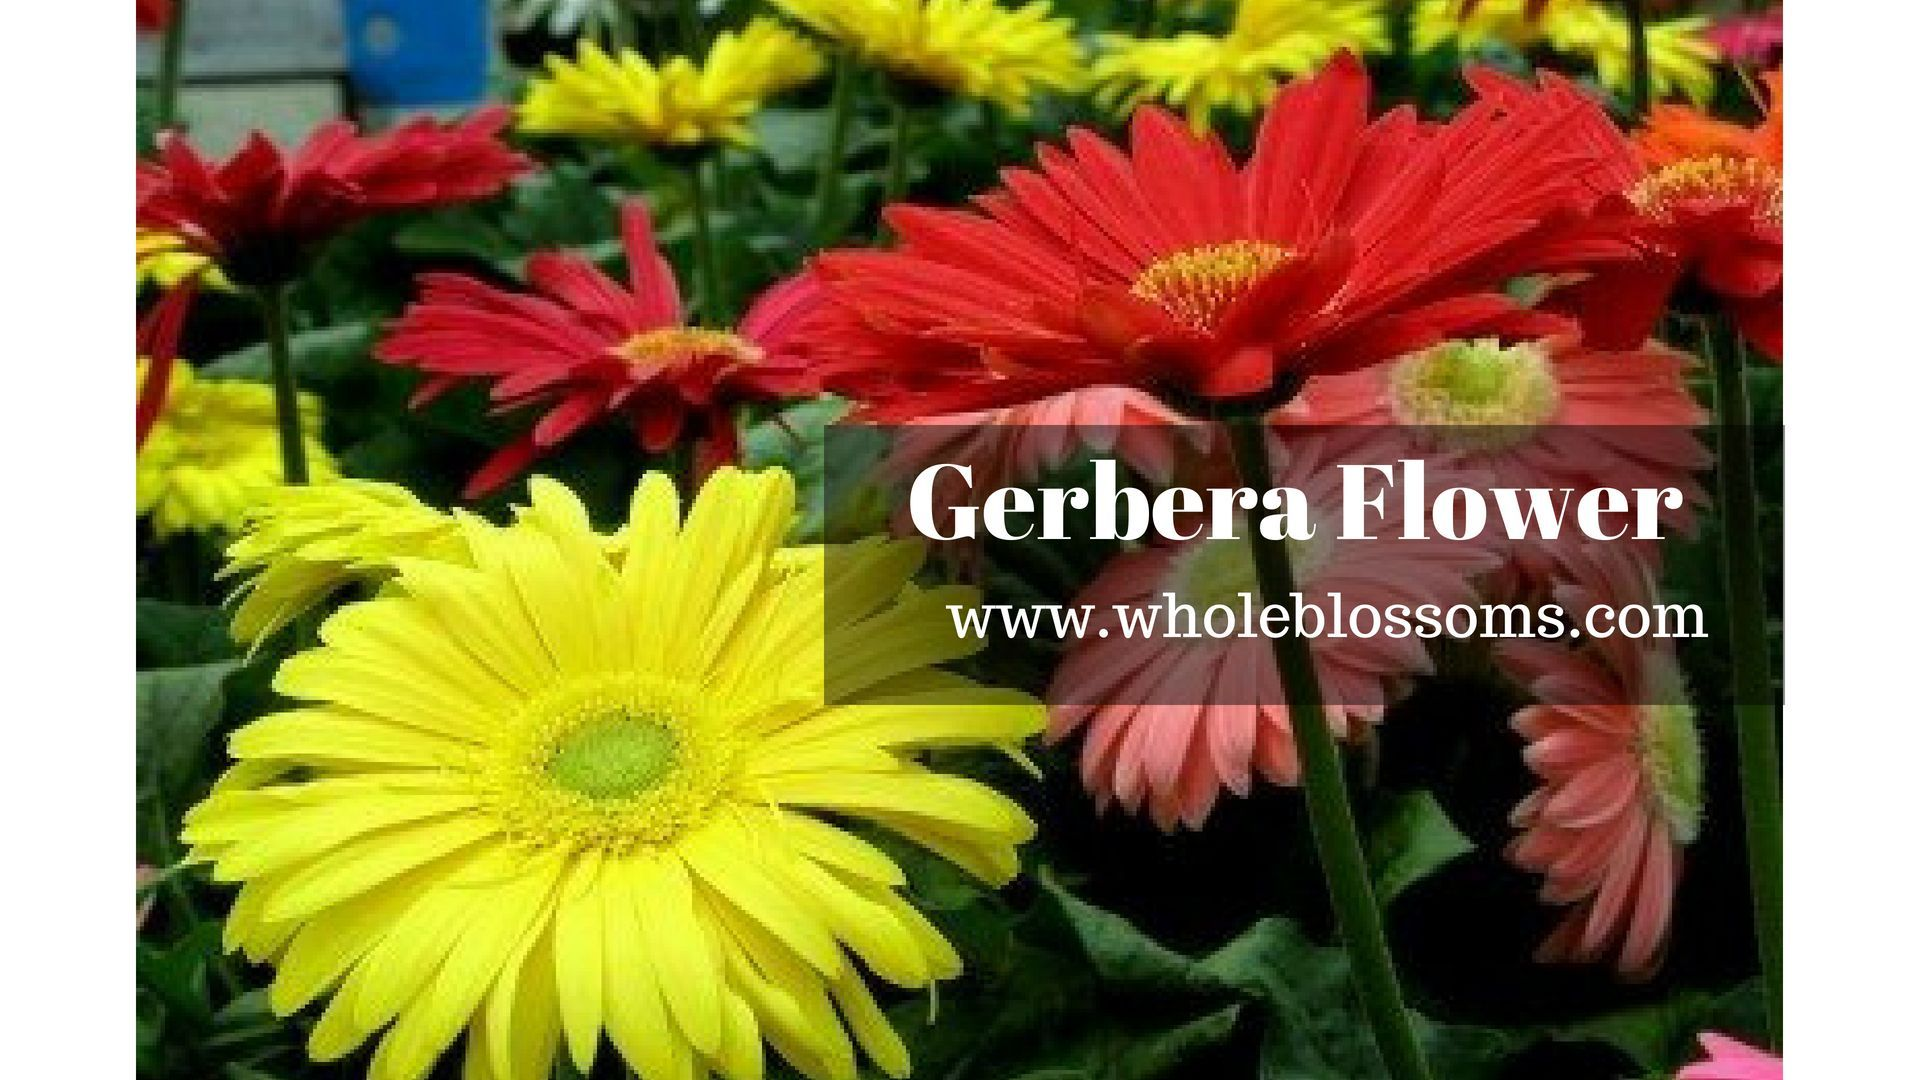 Gerbera Daisy Is One Of The Most Important Flowers In Your Wedding Decoration It Is Mostly U Daisy Bouquet Wedding Gerbera Daisy Wedding Bouquet Gerbera Daisy